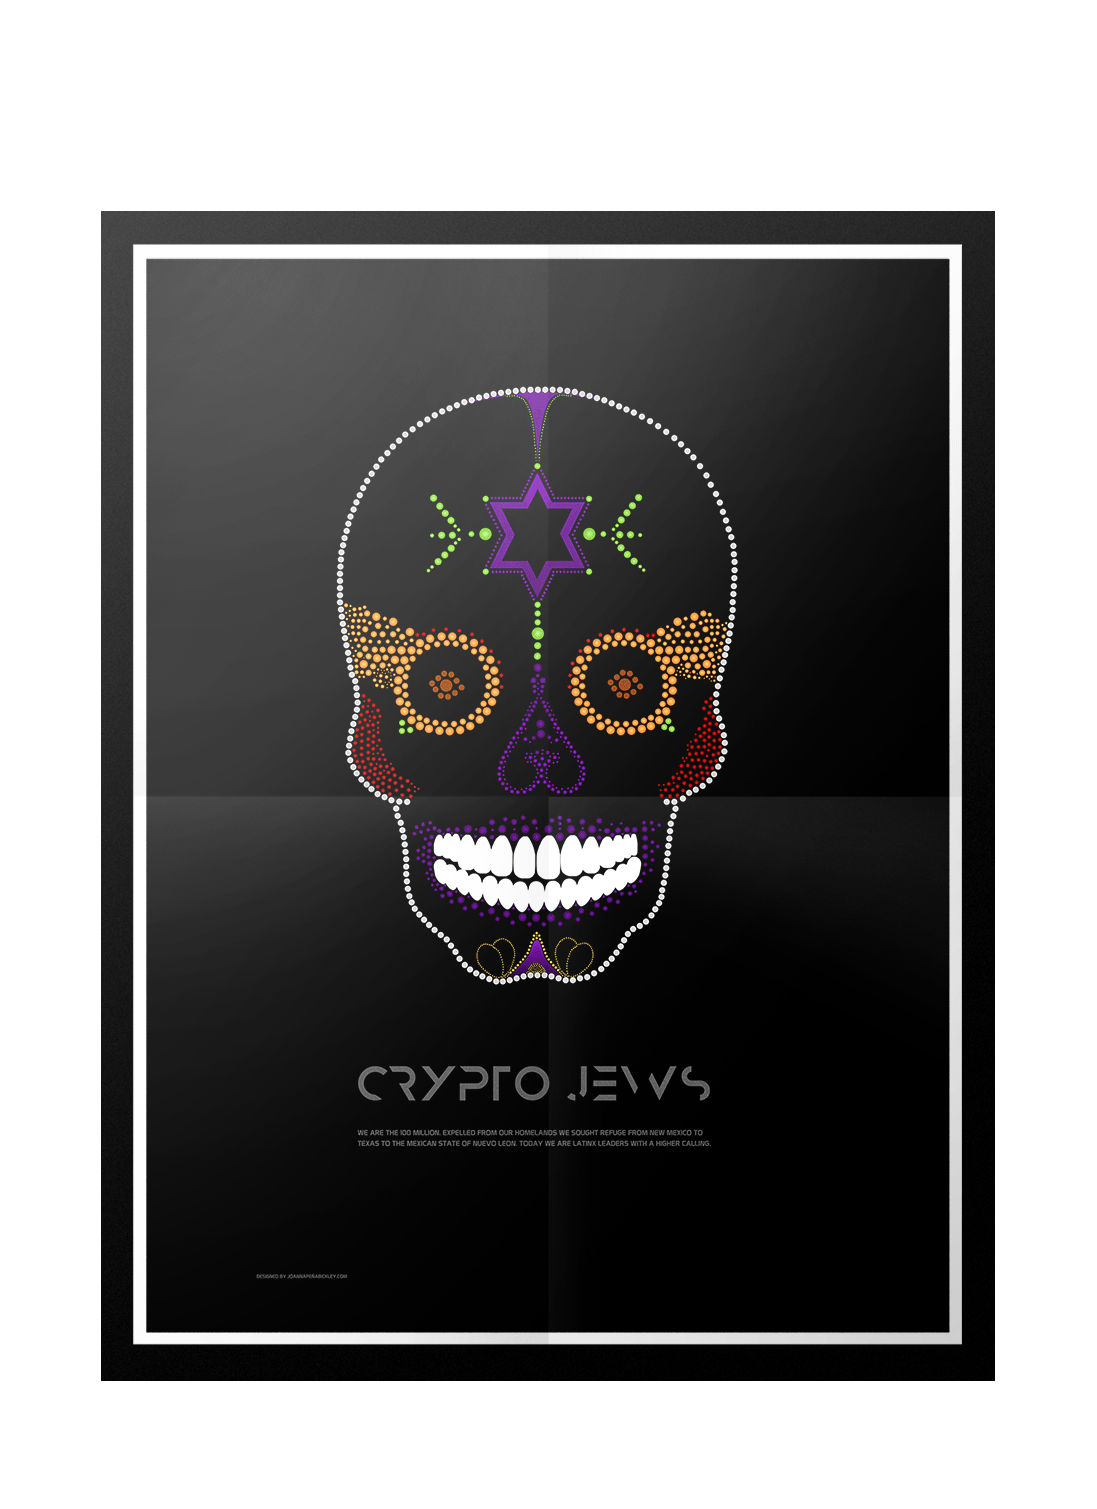 Crypto Jews Prints